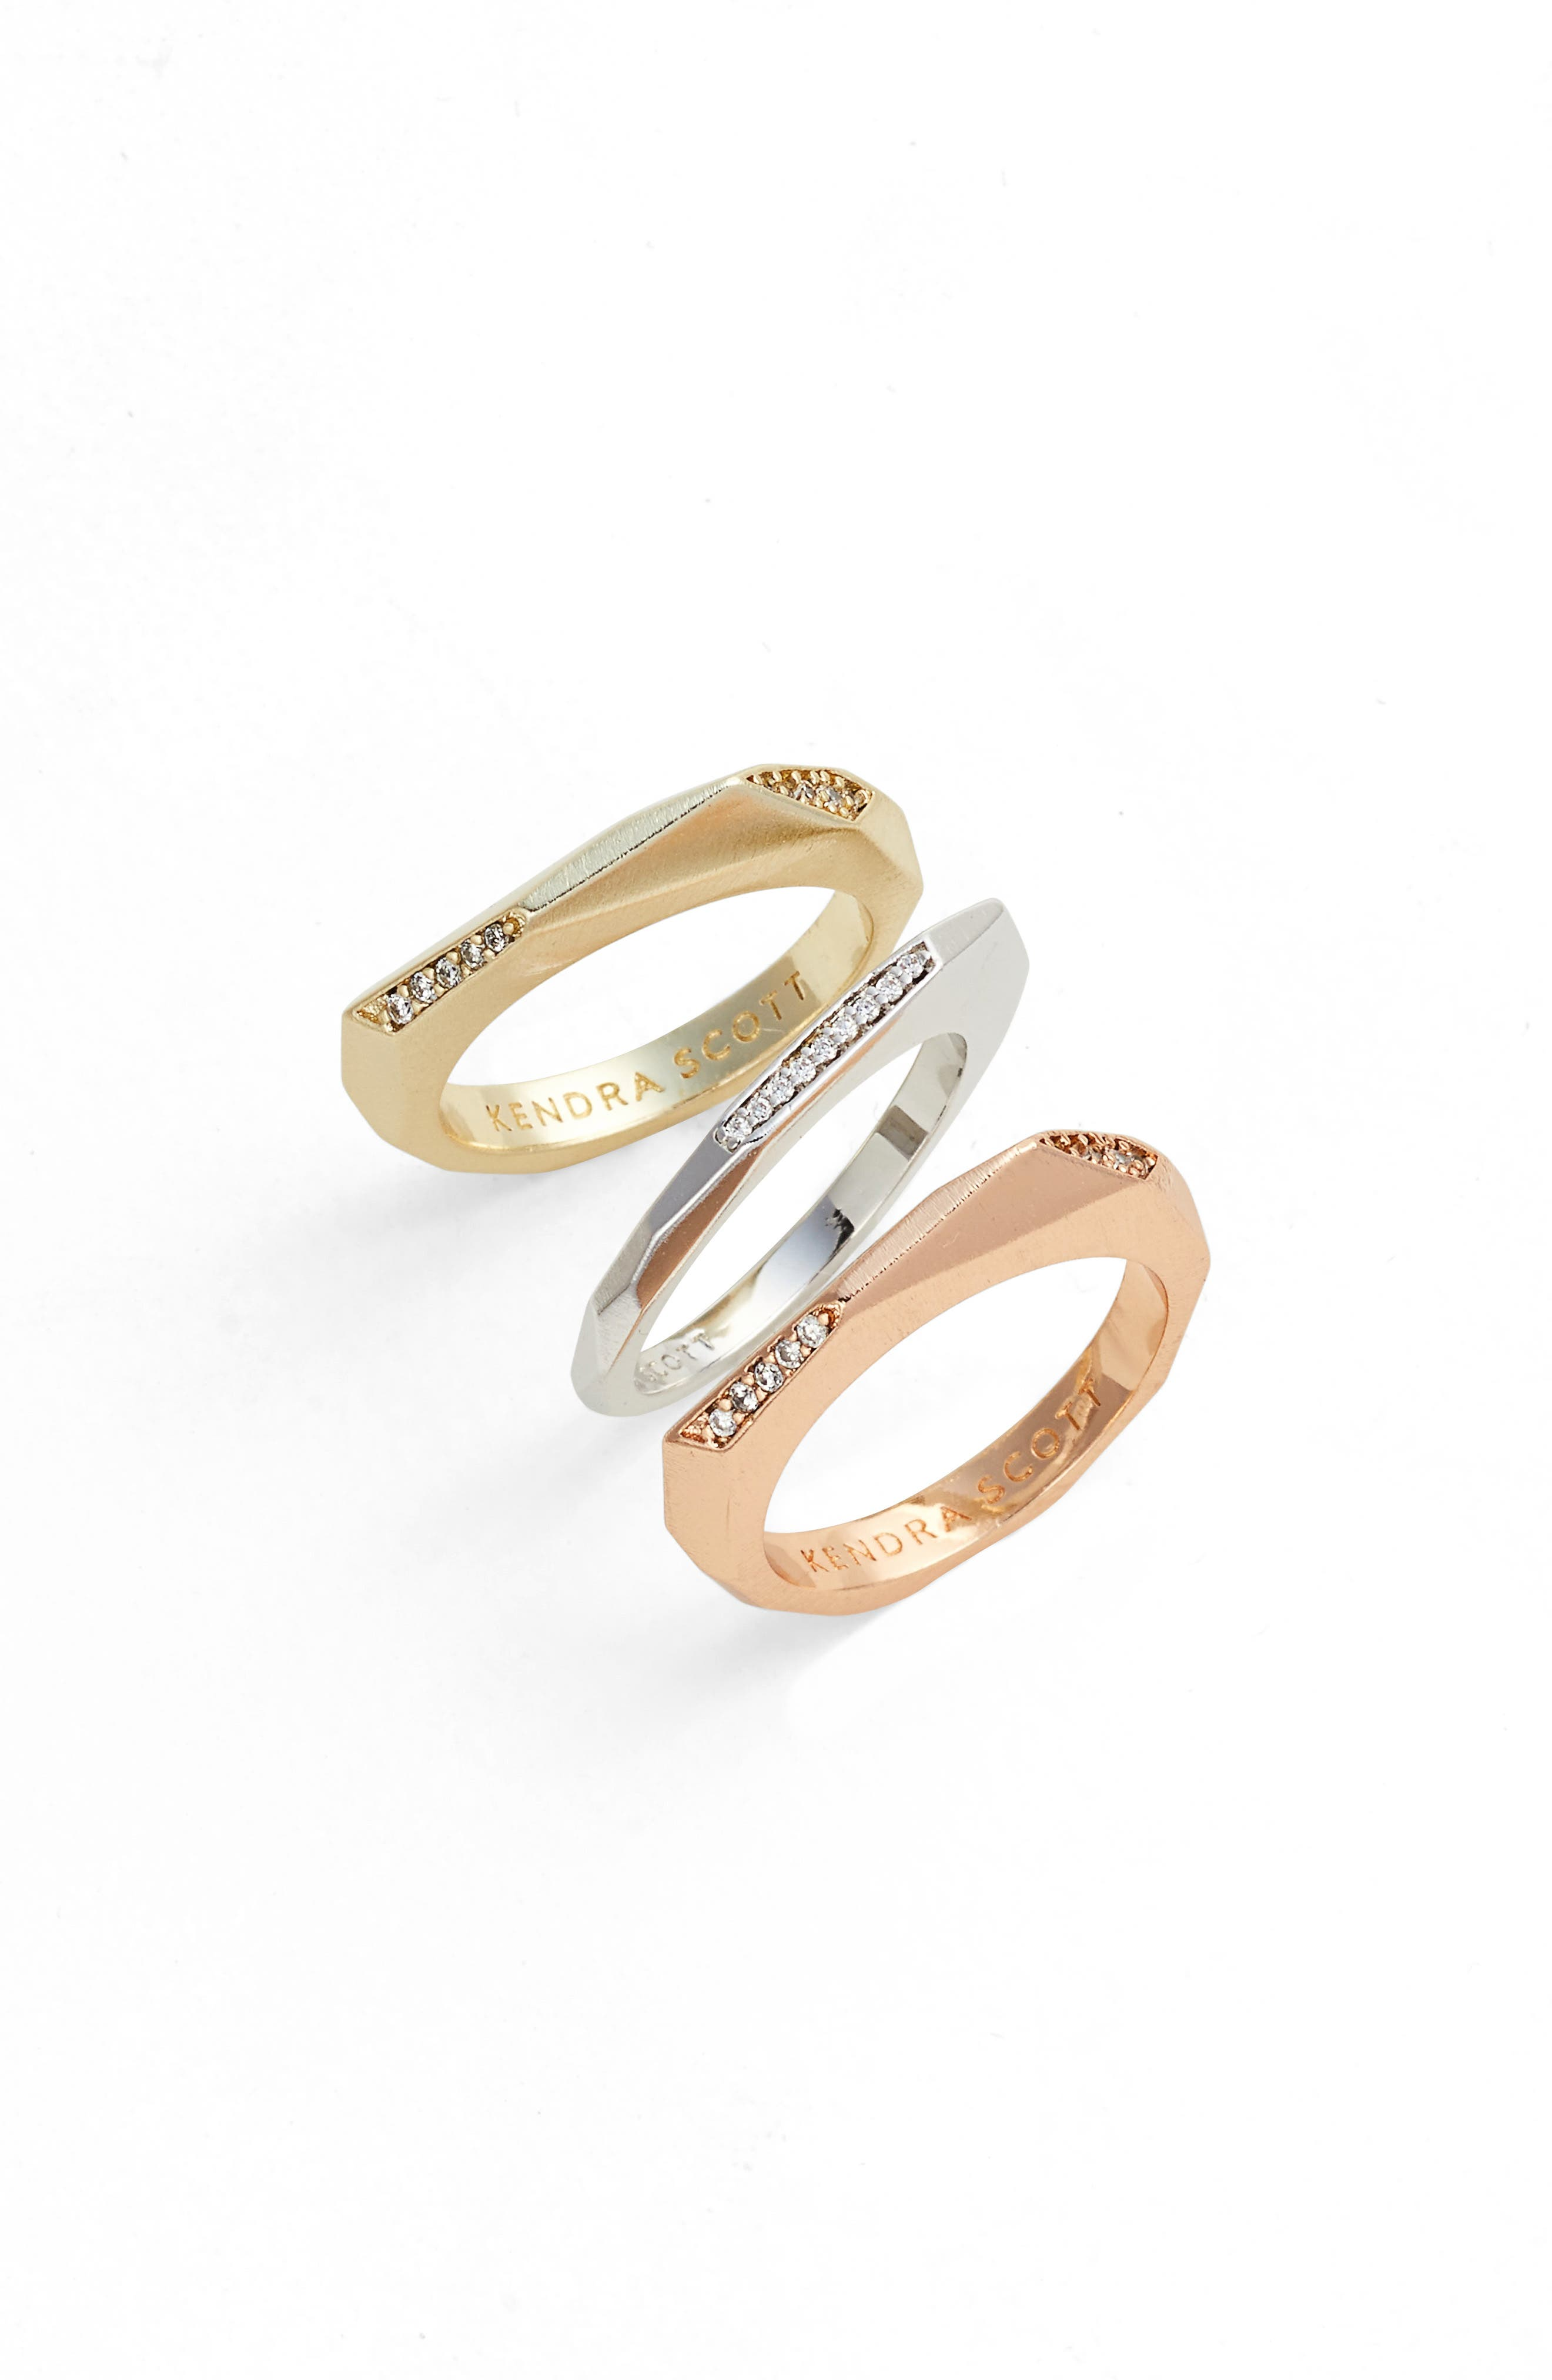 Joel Stackable Rings,                         Main,                         color, White Cz/ Mixed Metal